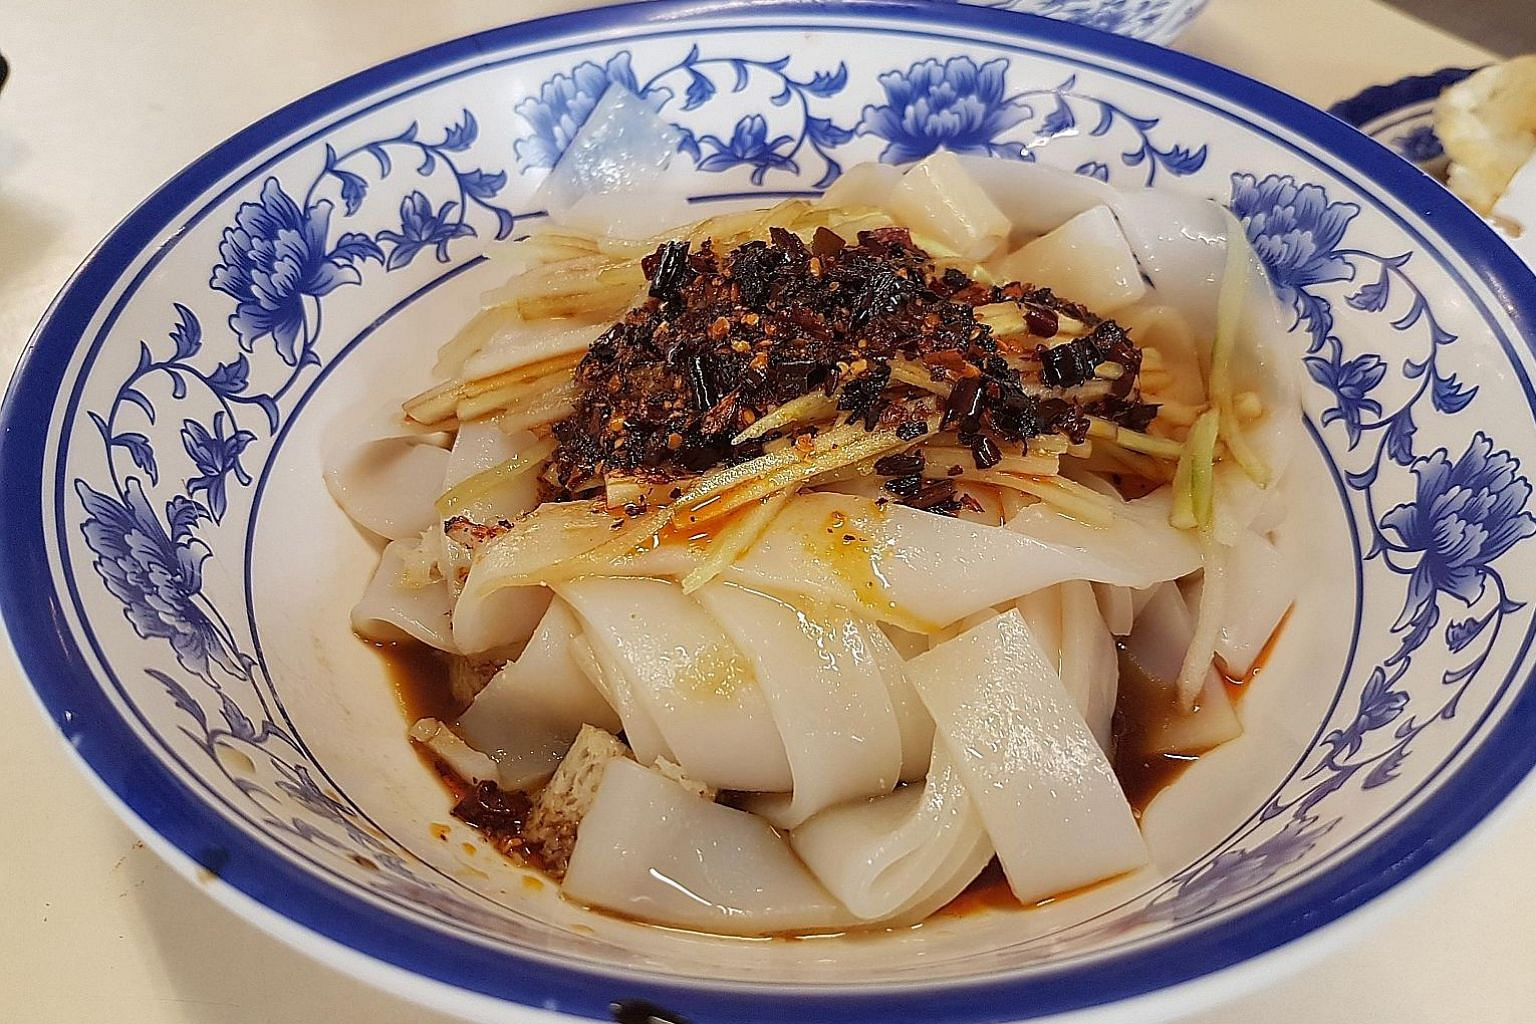 The Shaanxi cold noodlespack a bit of heat, but the coolness of the noodles also makes this a refreshing option in hot weather.